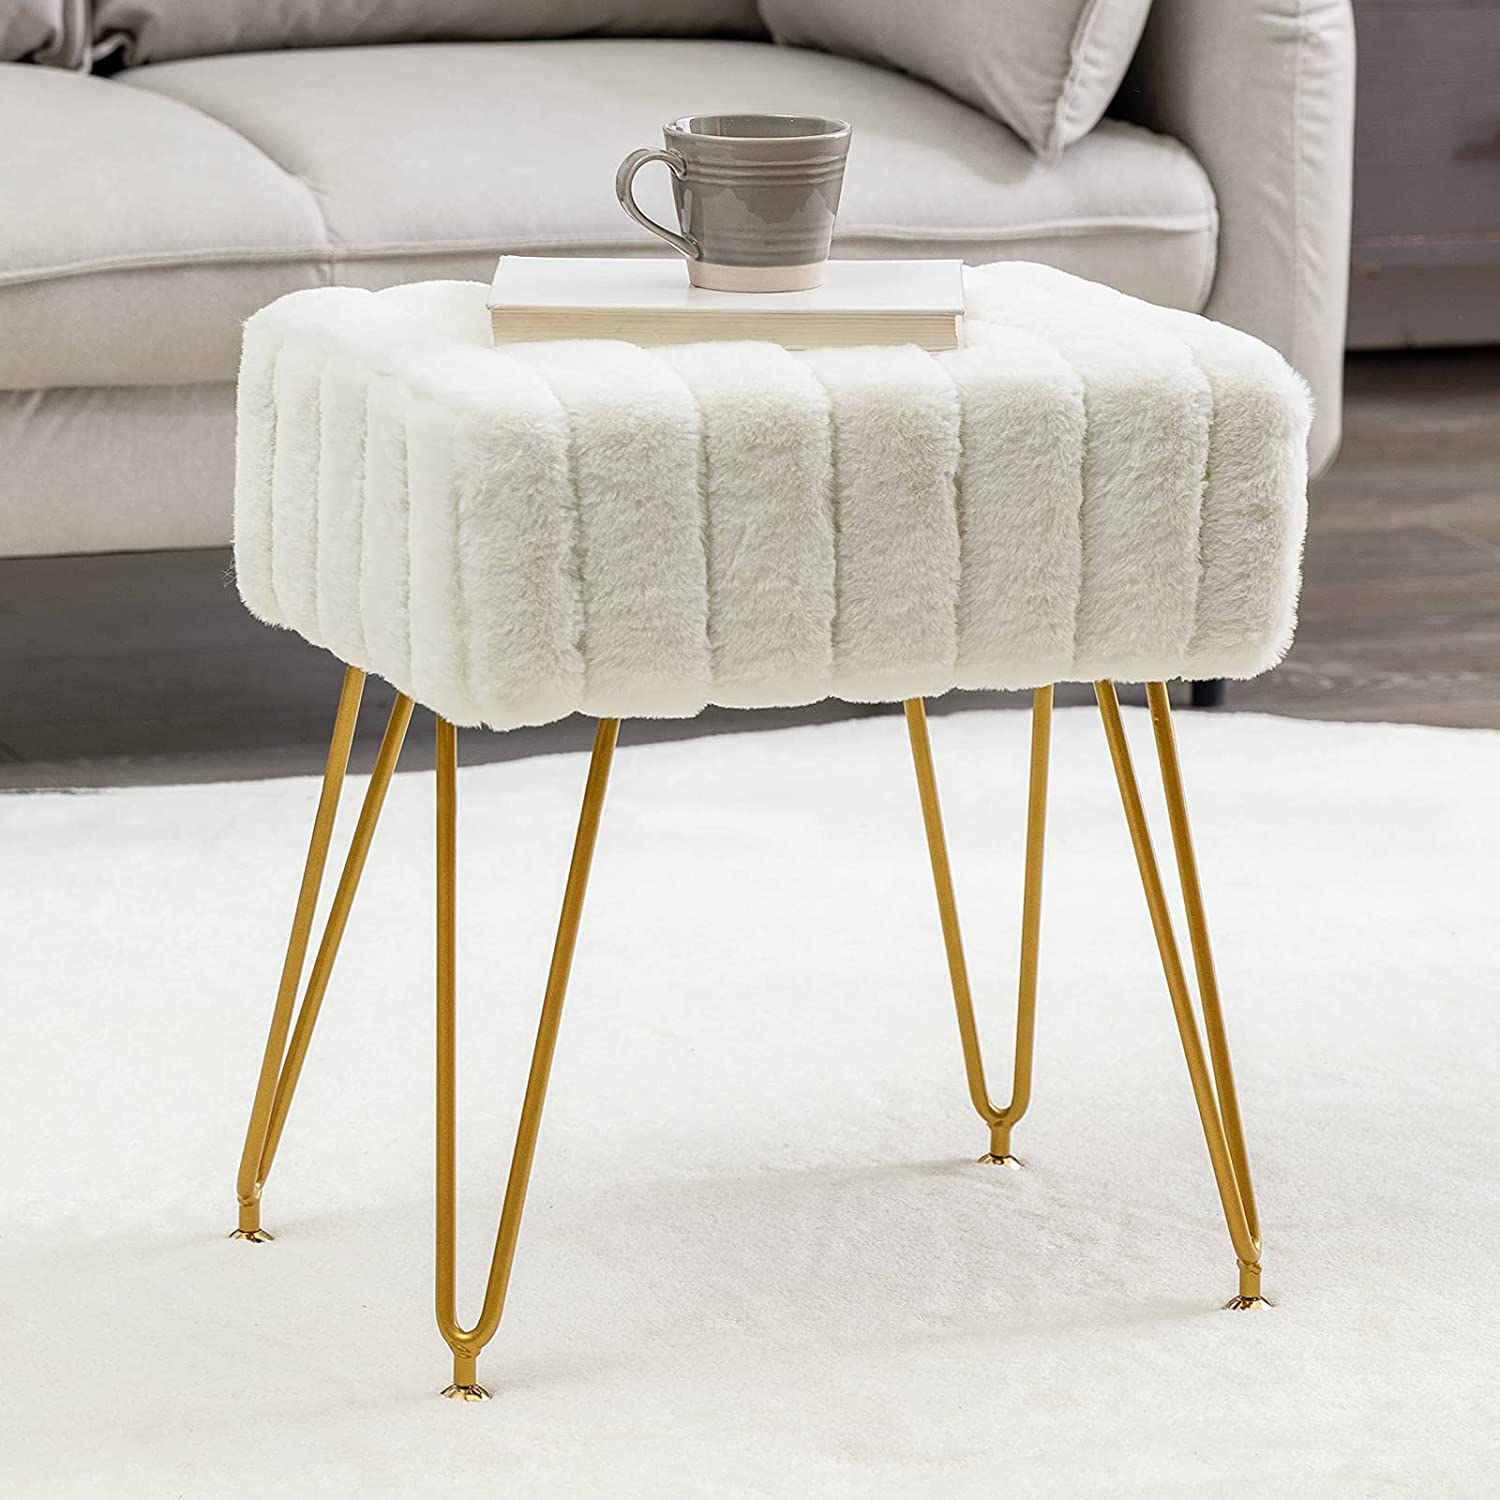 Modern Mink Square Footstool Ottoman Vanit low-pricing Max 85% OFF Faux Bench Fur White